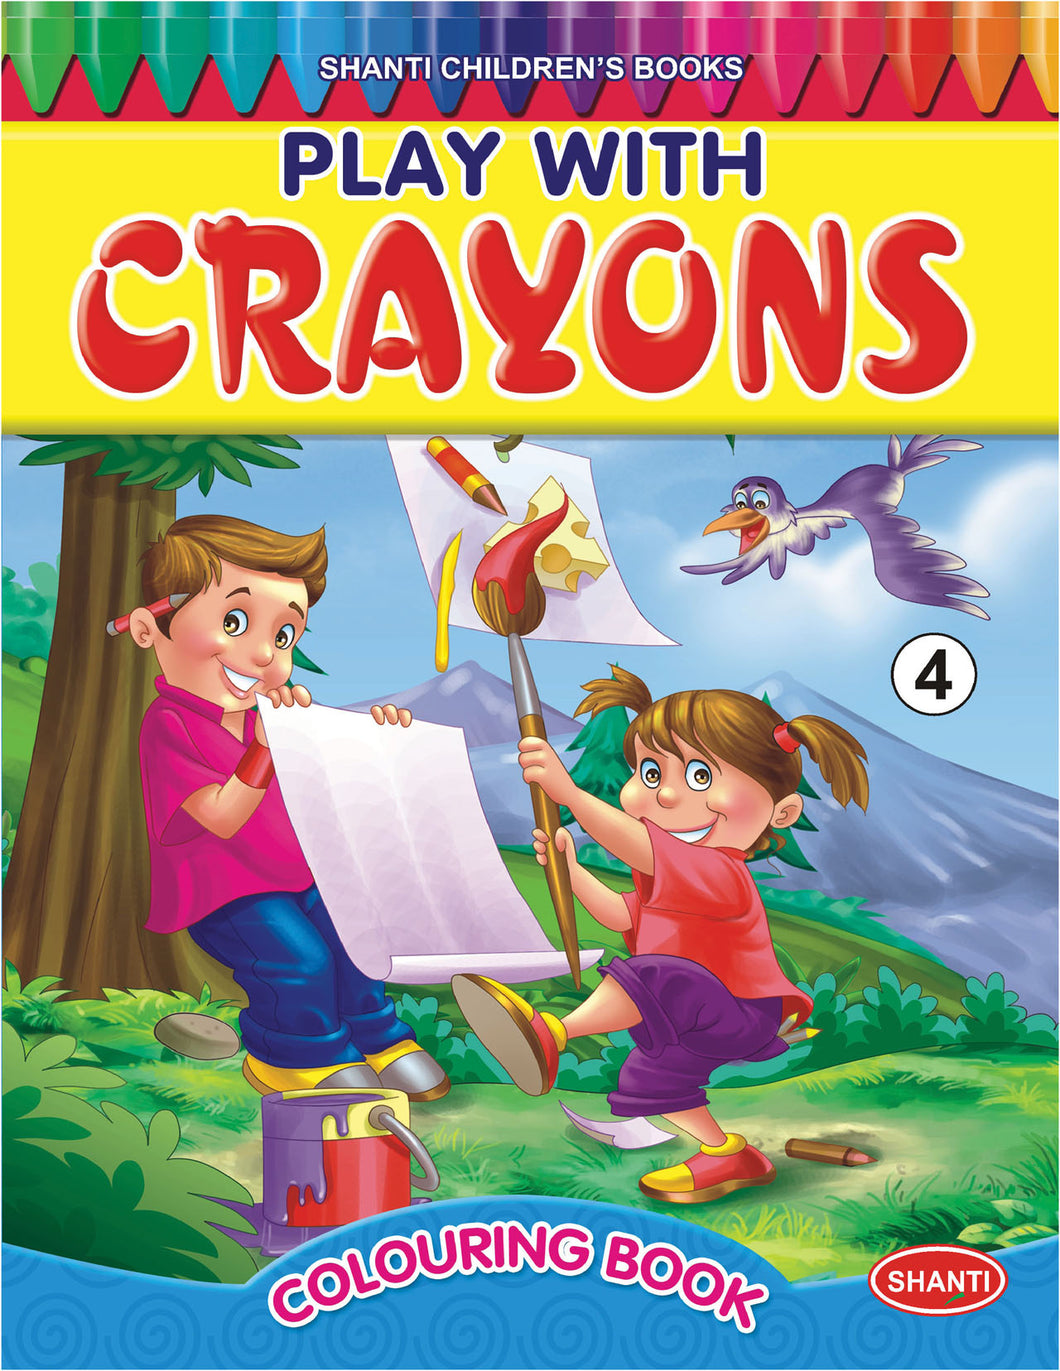 Colouring Books for Children - Play with Crayons - 4